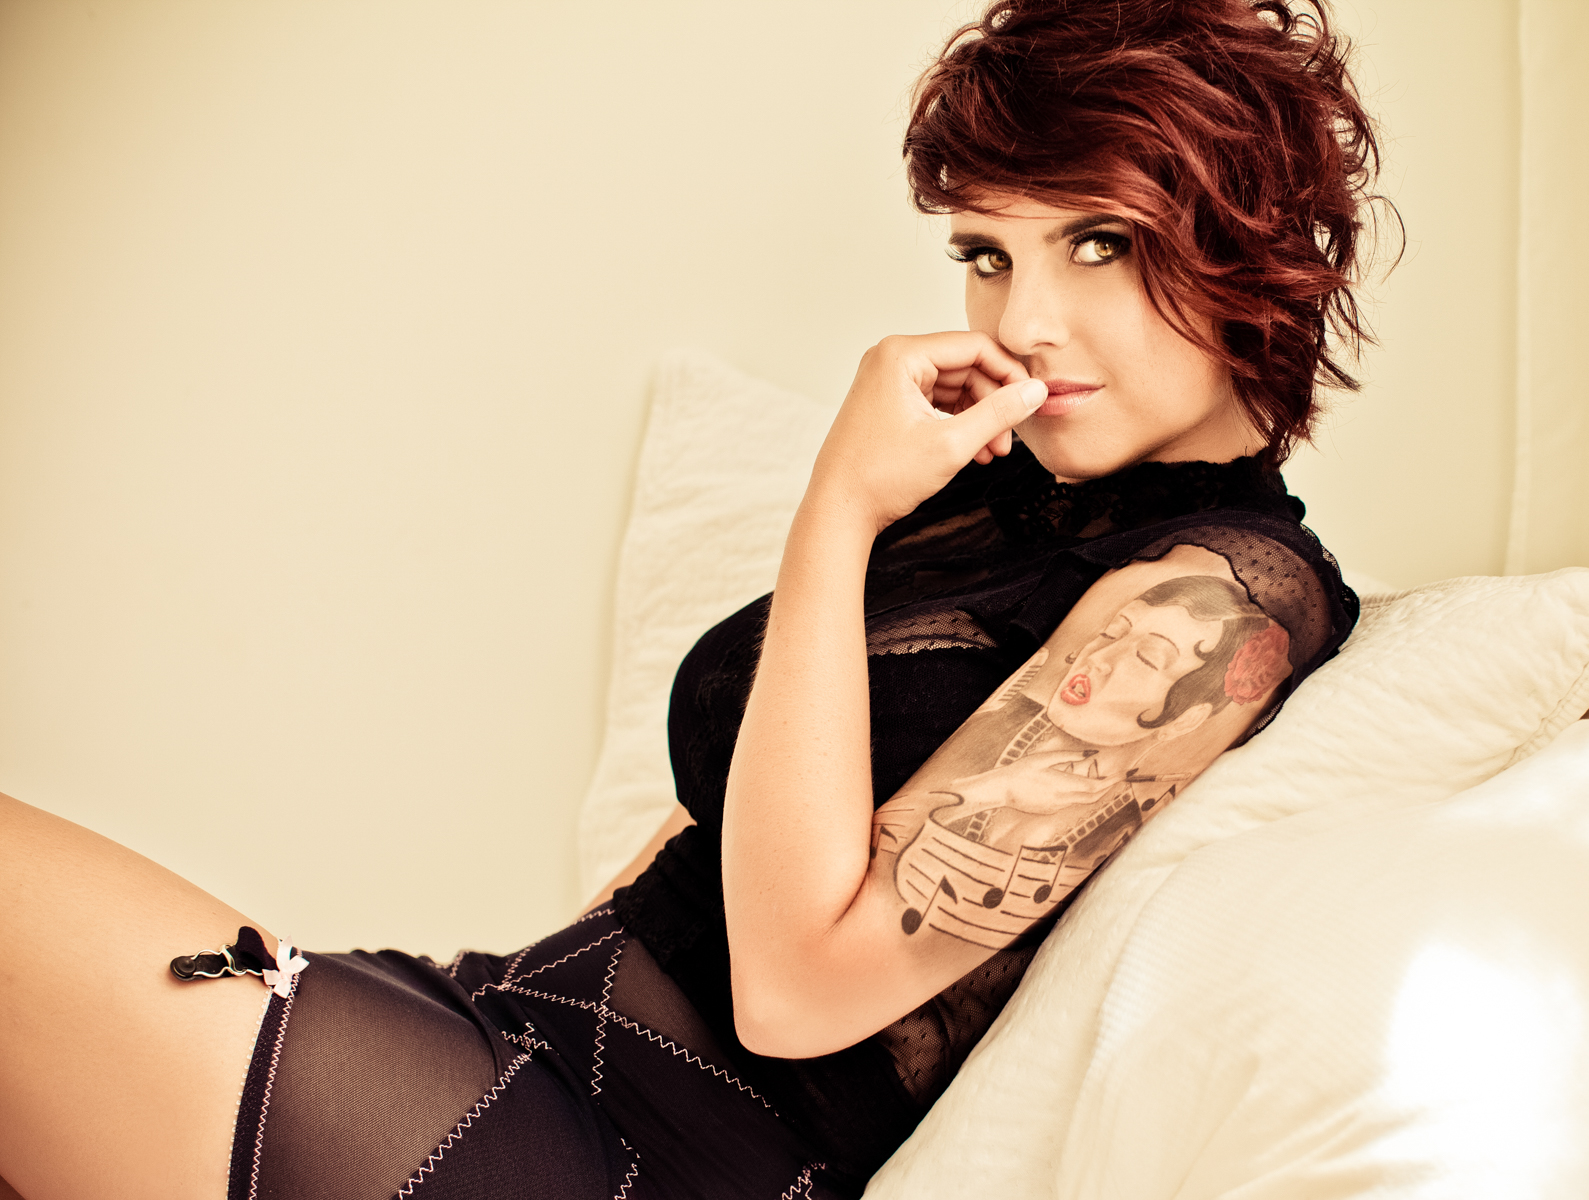 Redhead woman with sleeve tattoo in black lingerie